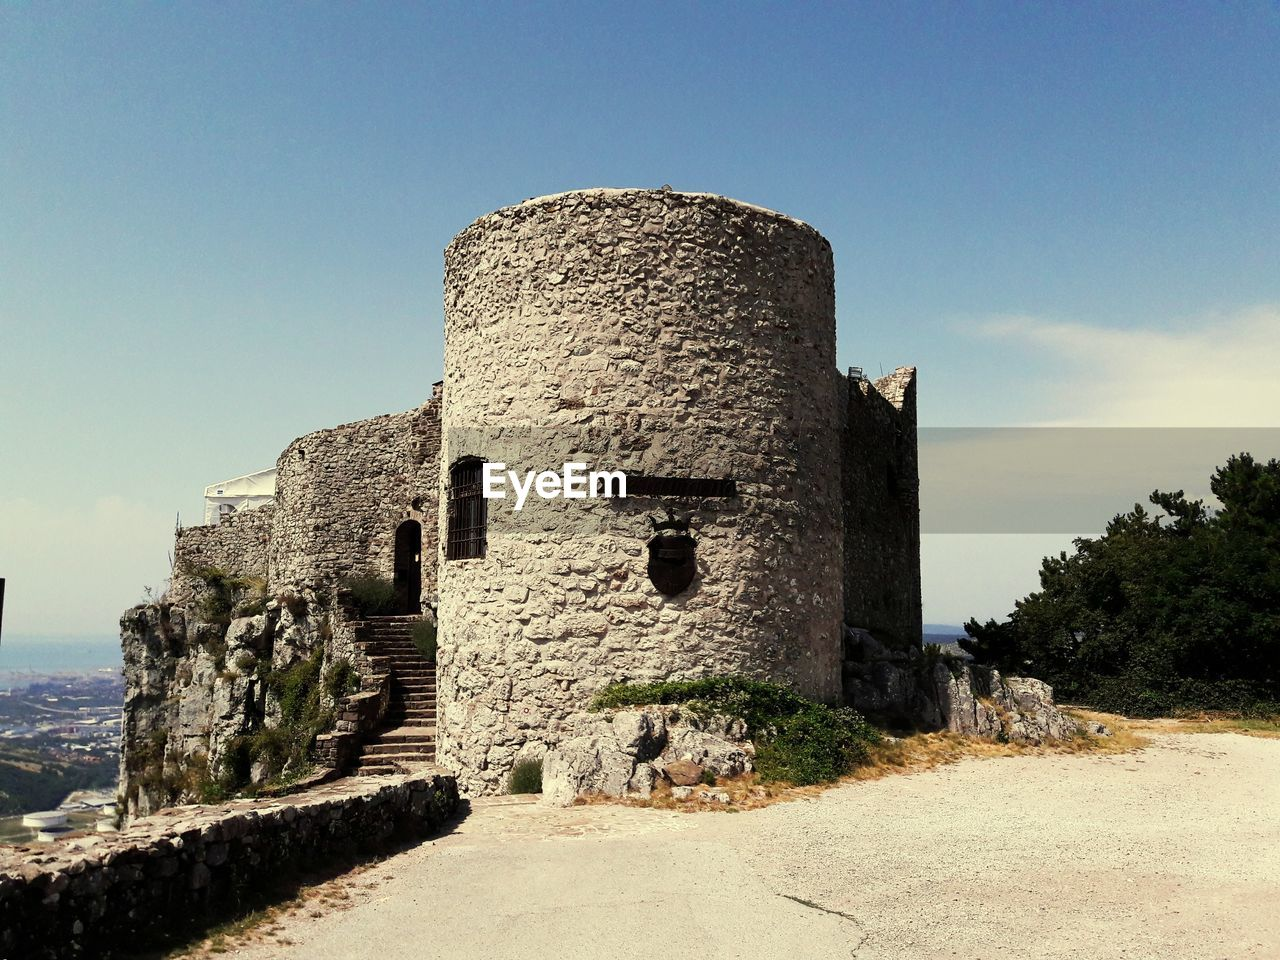 architecture, history, the past, built structure, old ruin, ancient, building exterior, day, ancient civilization, fort, castle, sky, travel destinations, outdoors, no people, clear sky, nature